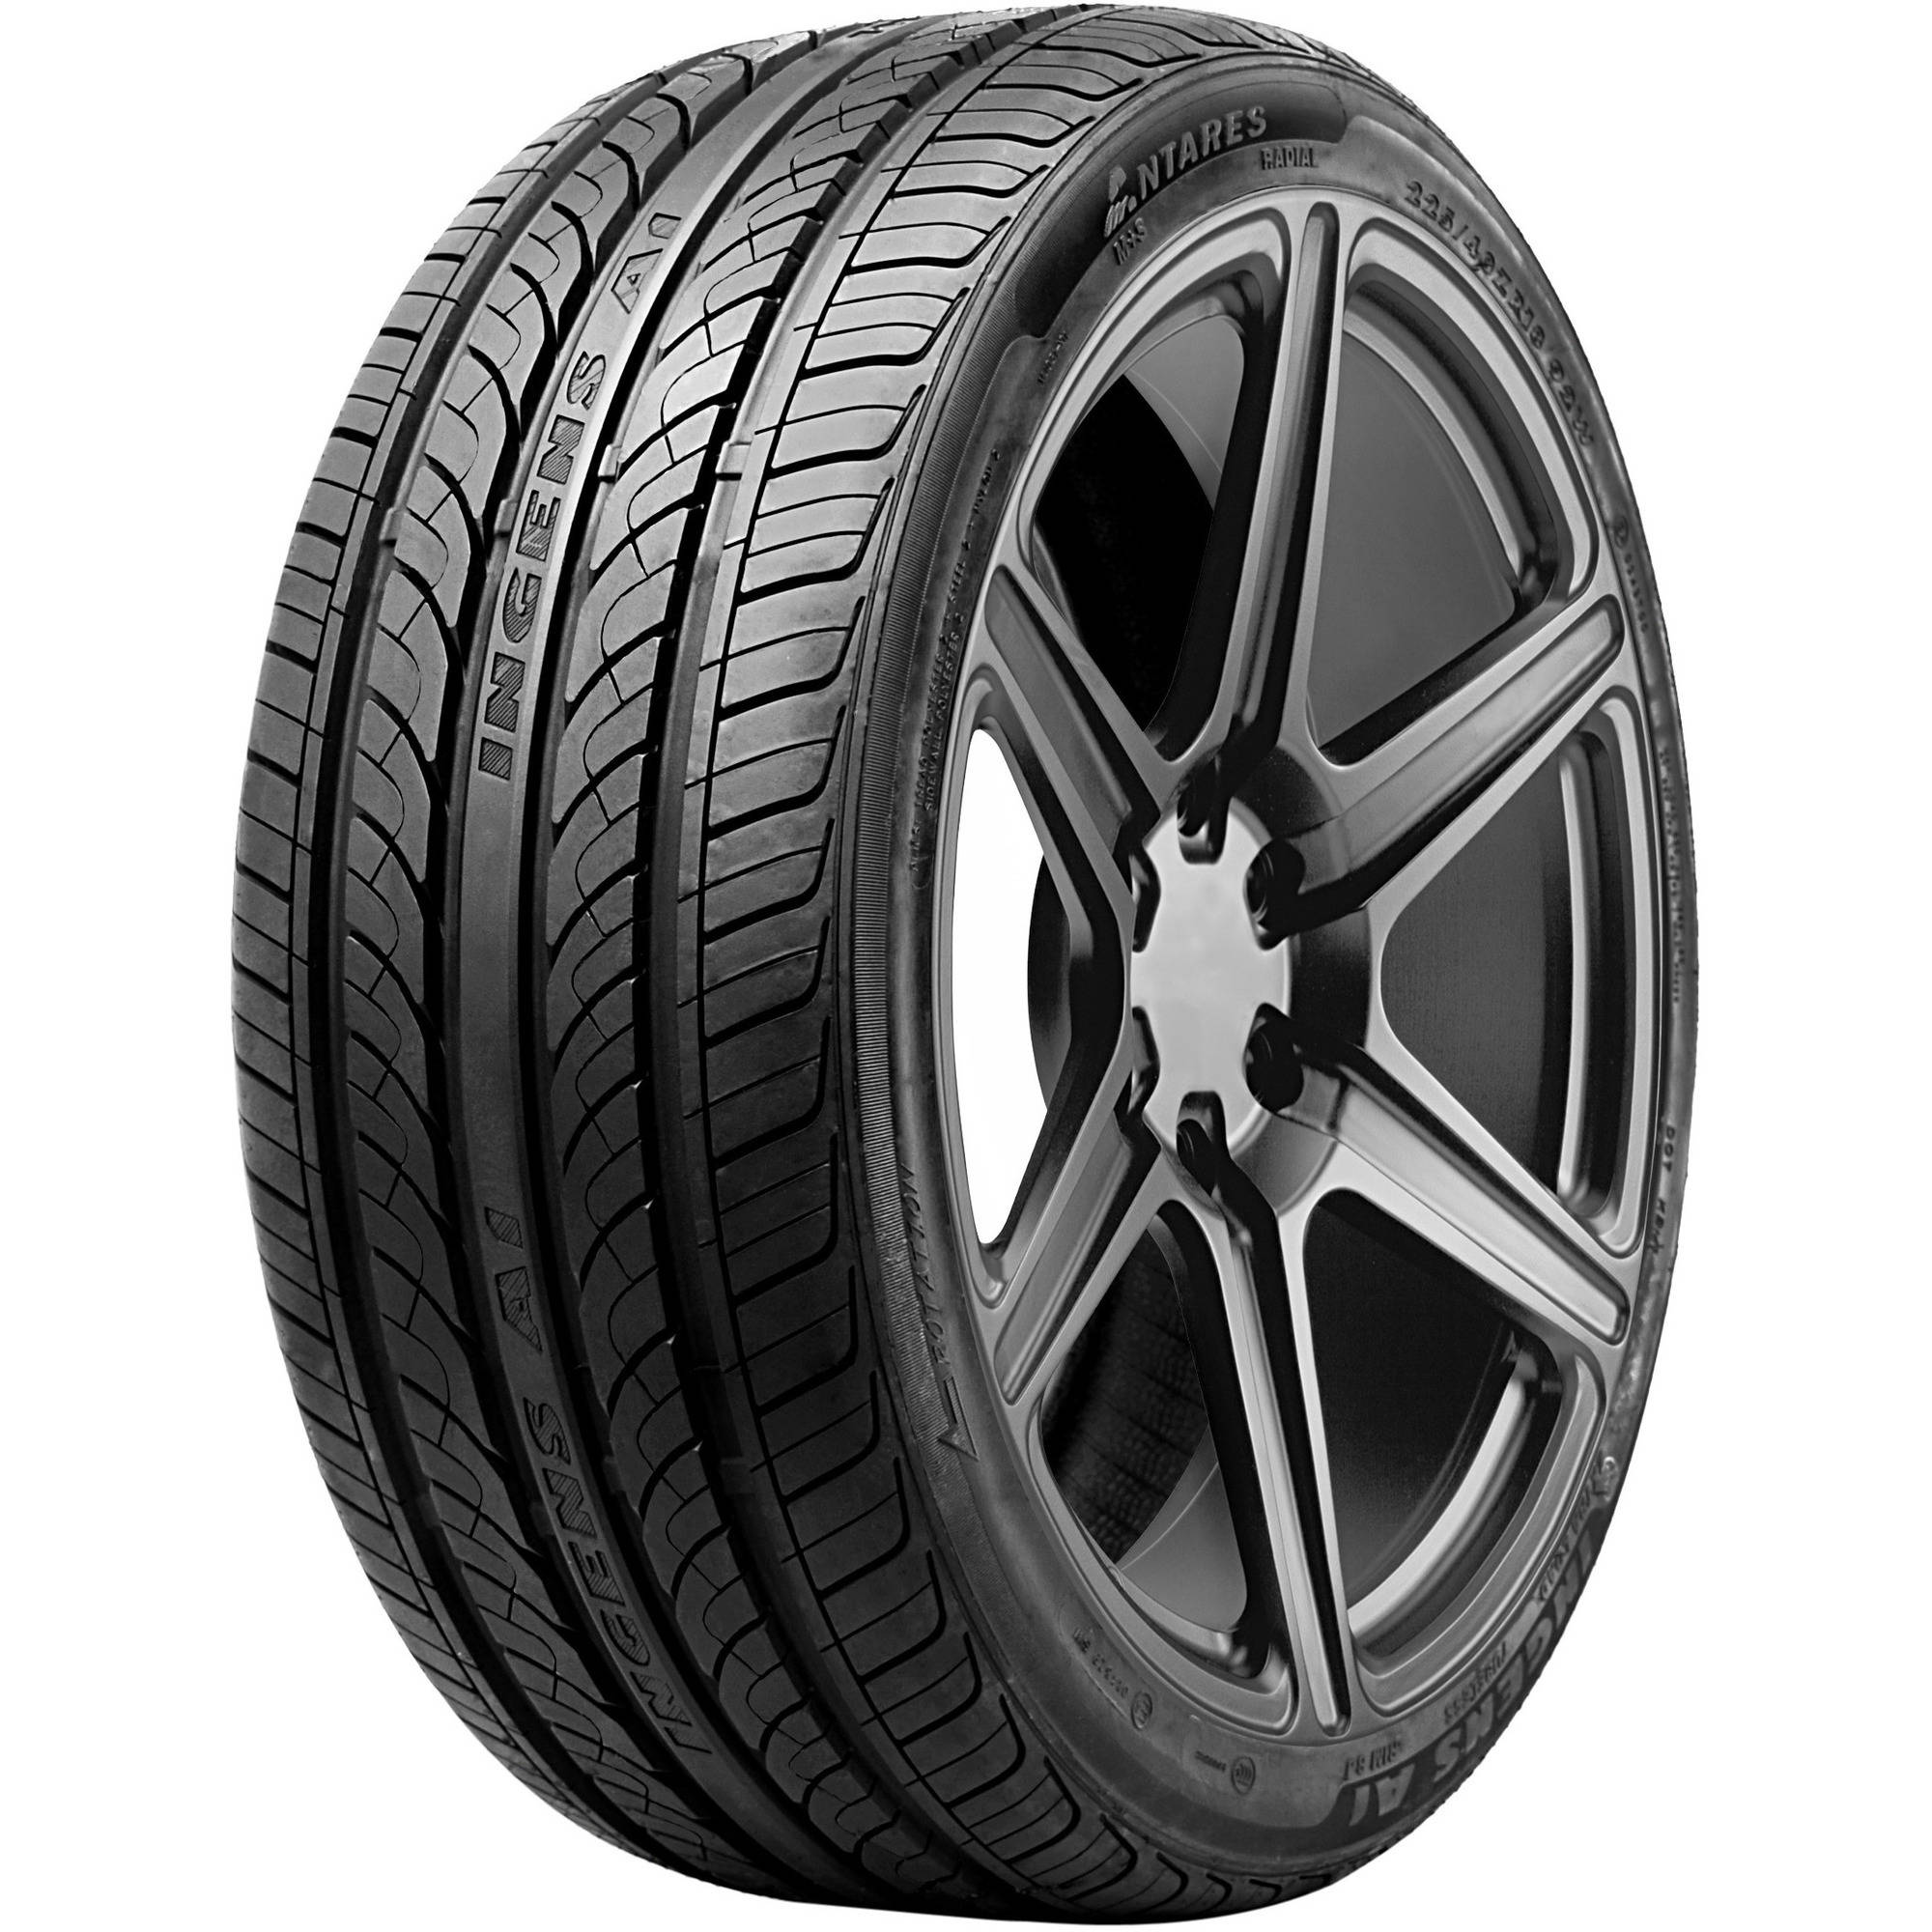 Antares Ingens A1 215 45R17 91W Tire by Antares